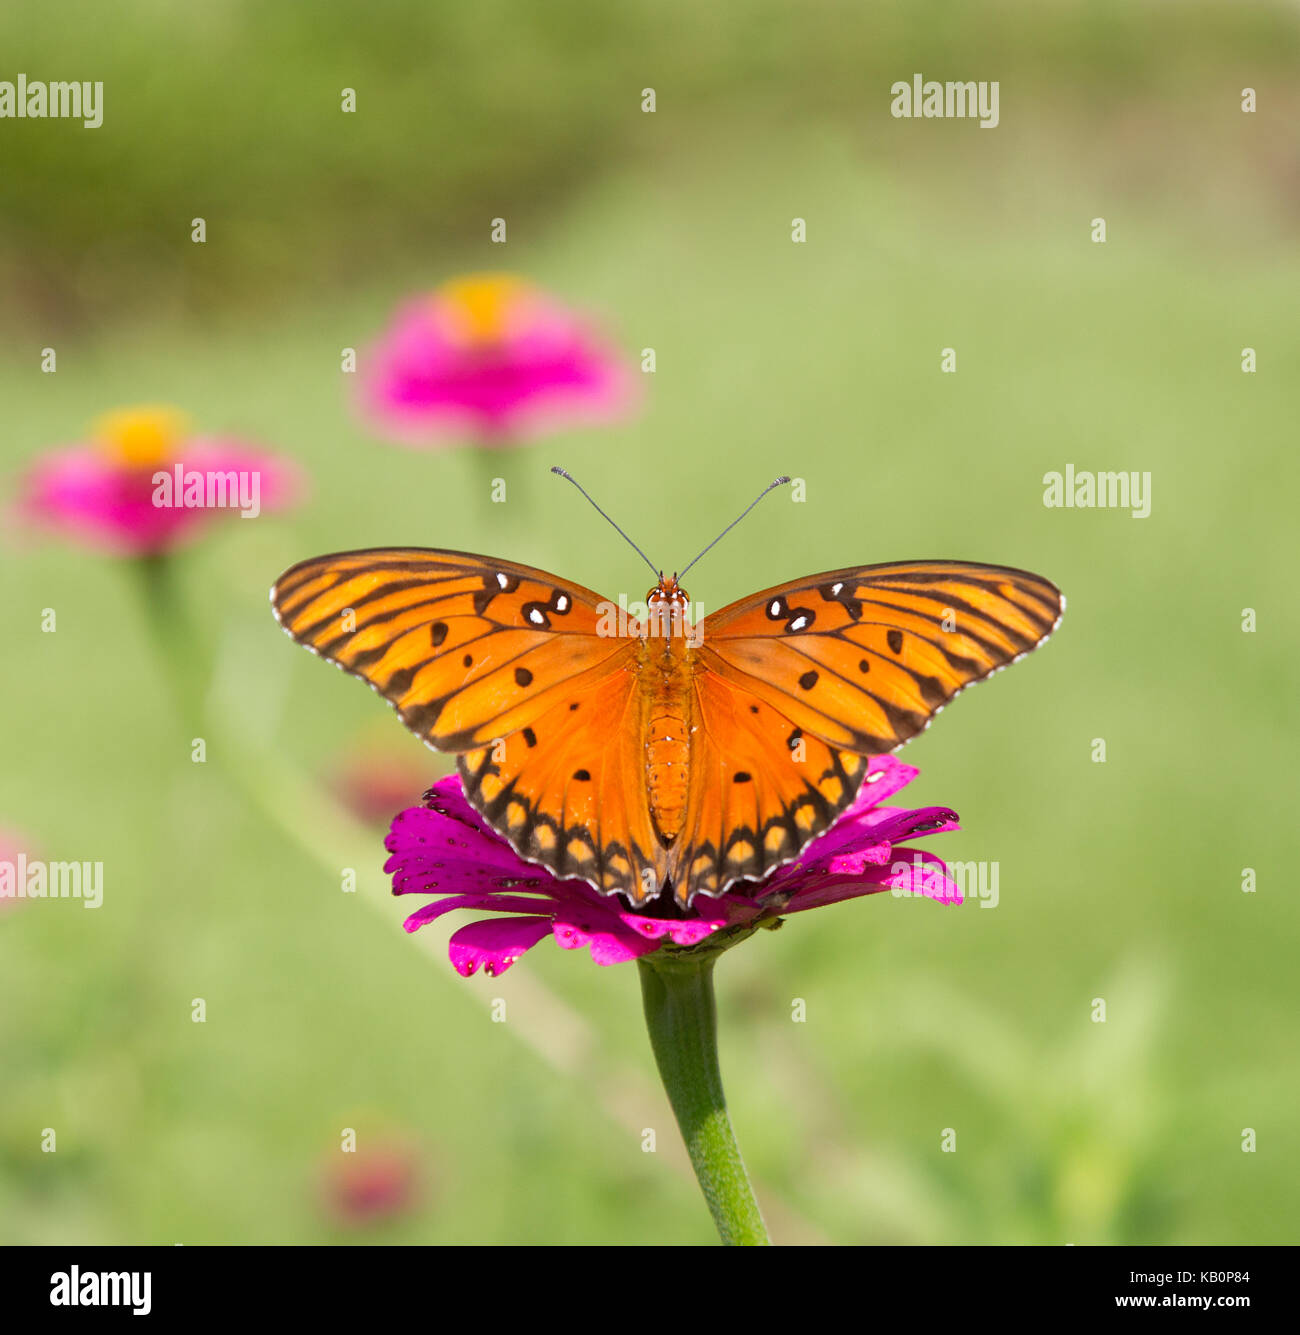 Gulf Fritillary Butterfly on Magenta Flower - Stock Image